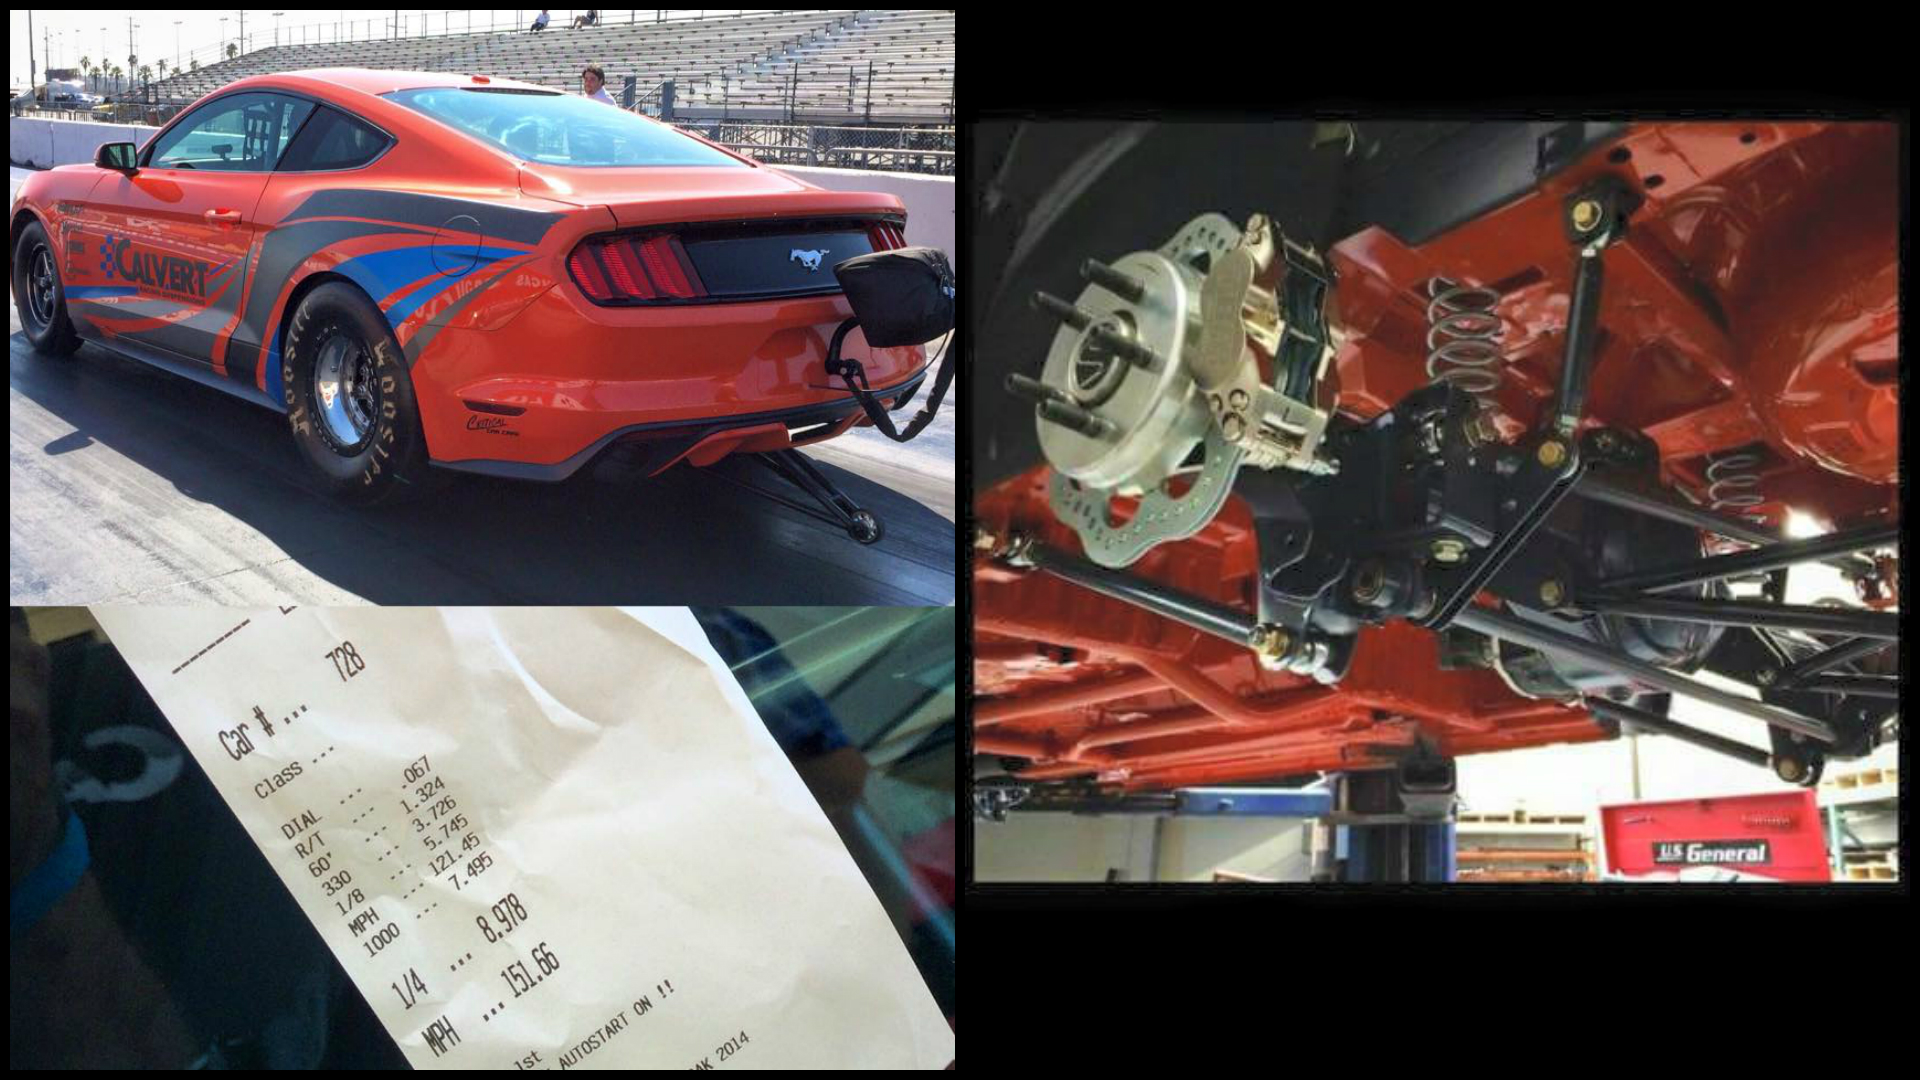 Mustang Cobra Jet >> 2015 Mustang Gets Solid Rear Axle Conversion as Cobra Jet Test Car, Does 8s Quarter Mile ...